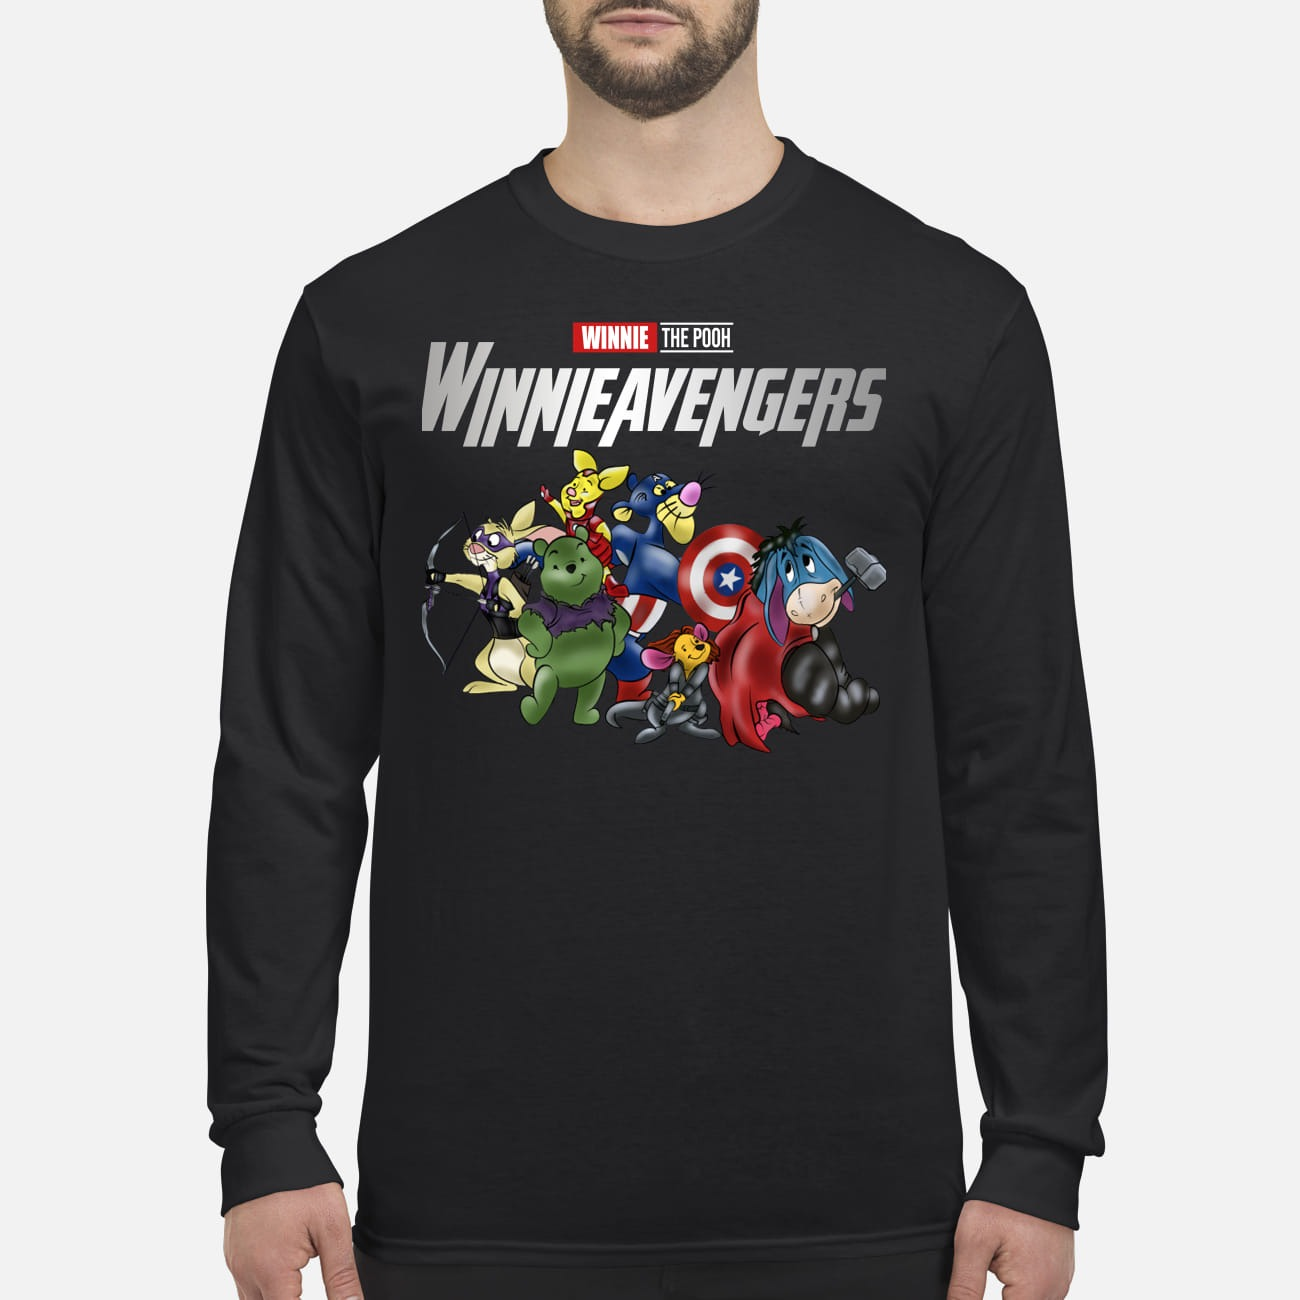 Winnie the pooh avenger winnieavengers men's long sleeved shirt